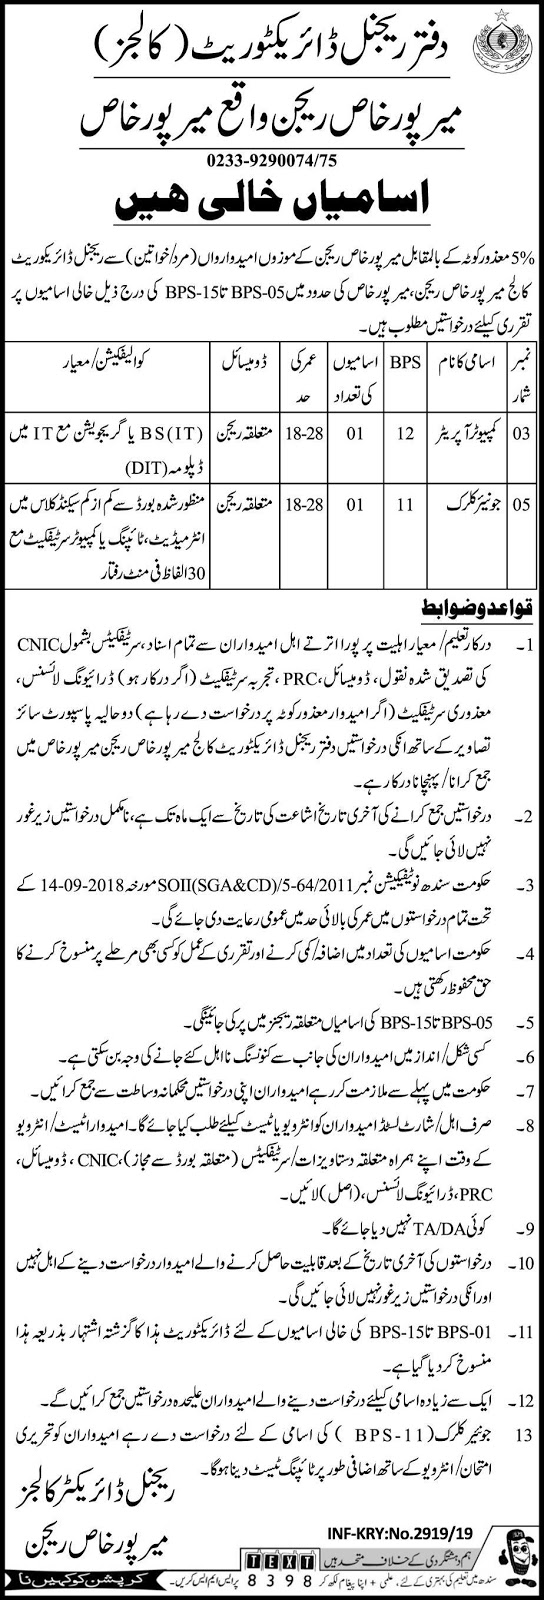 Regional Directorate Colleges, Mirpur Khas Sindh Jobs 2019